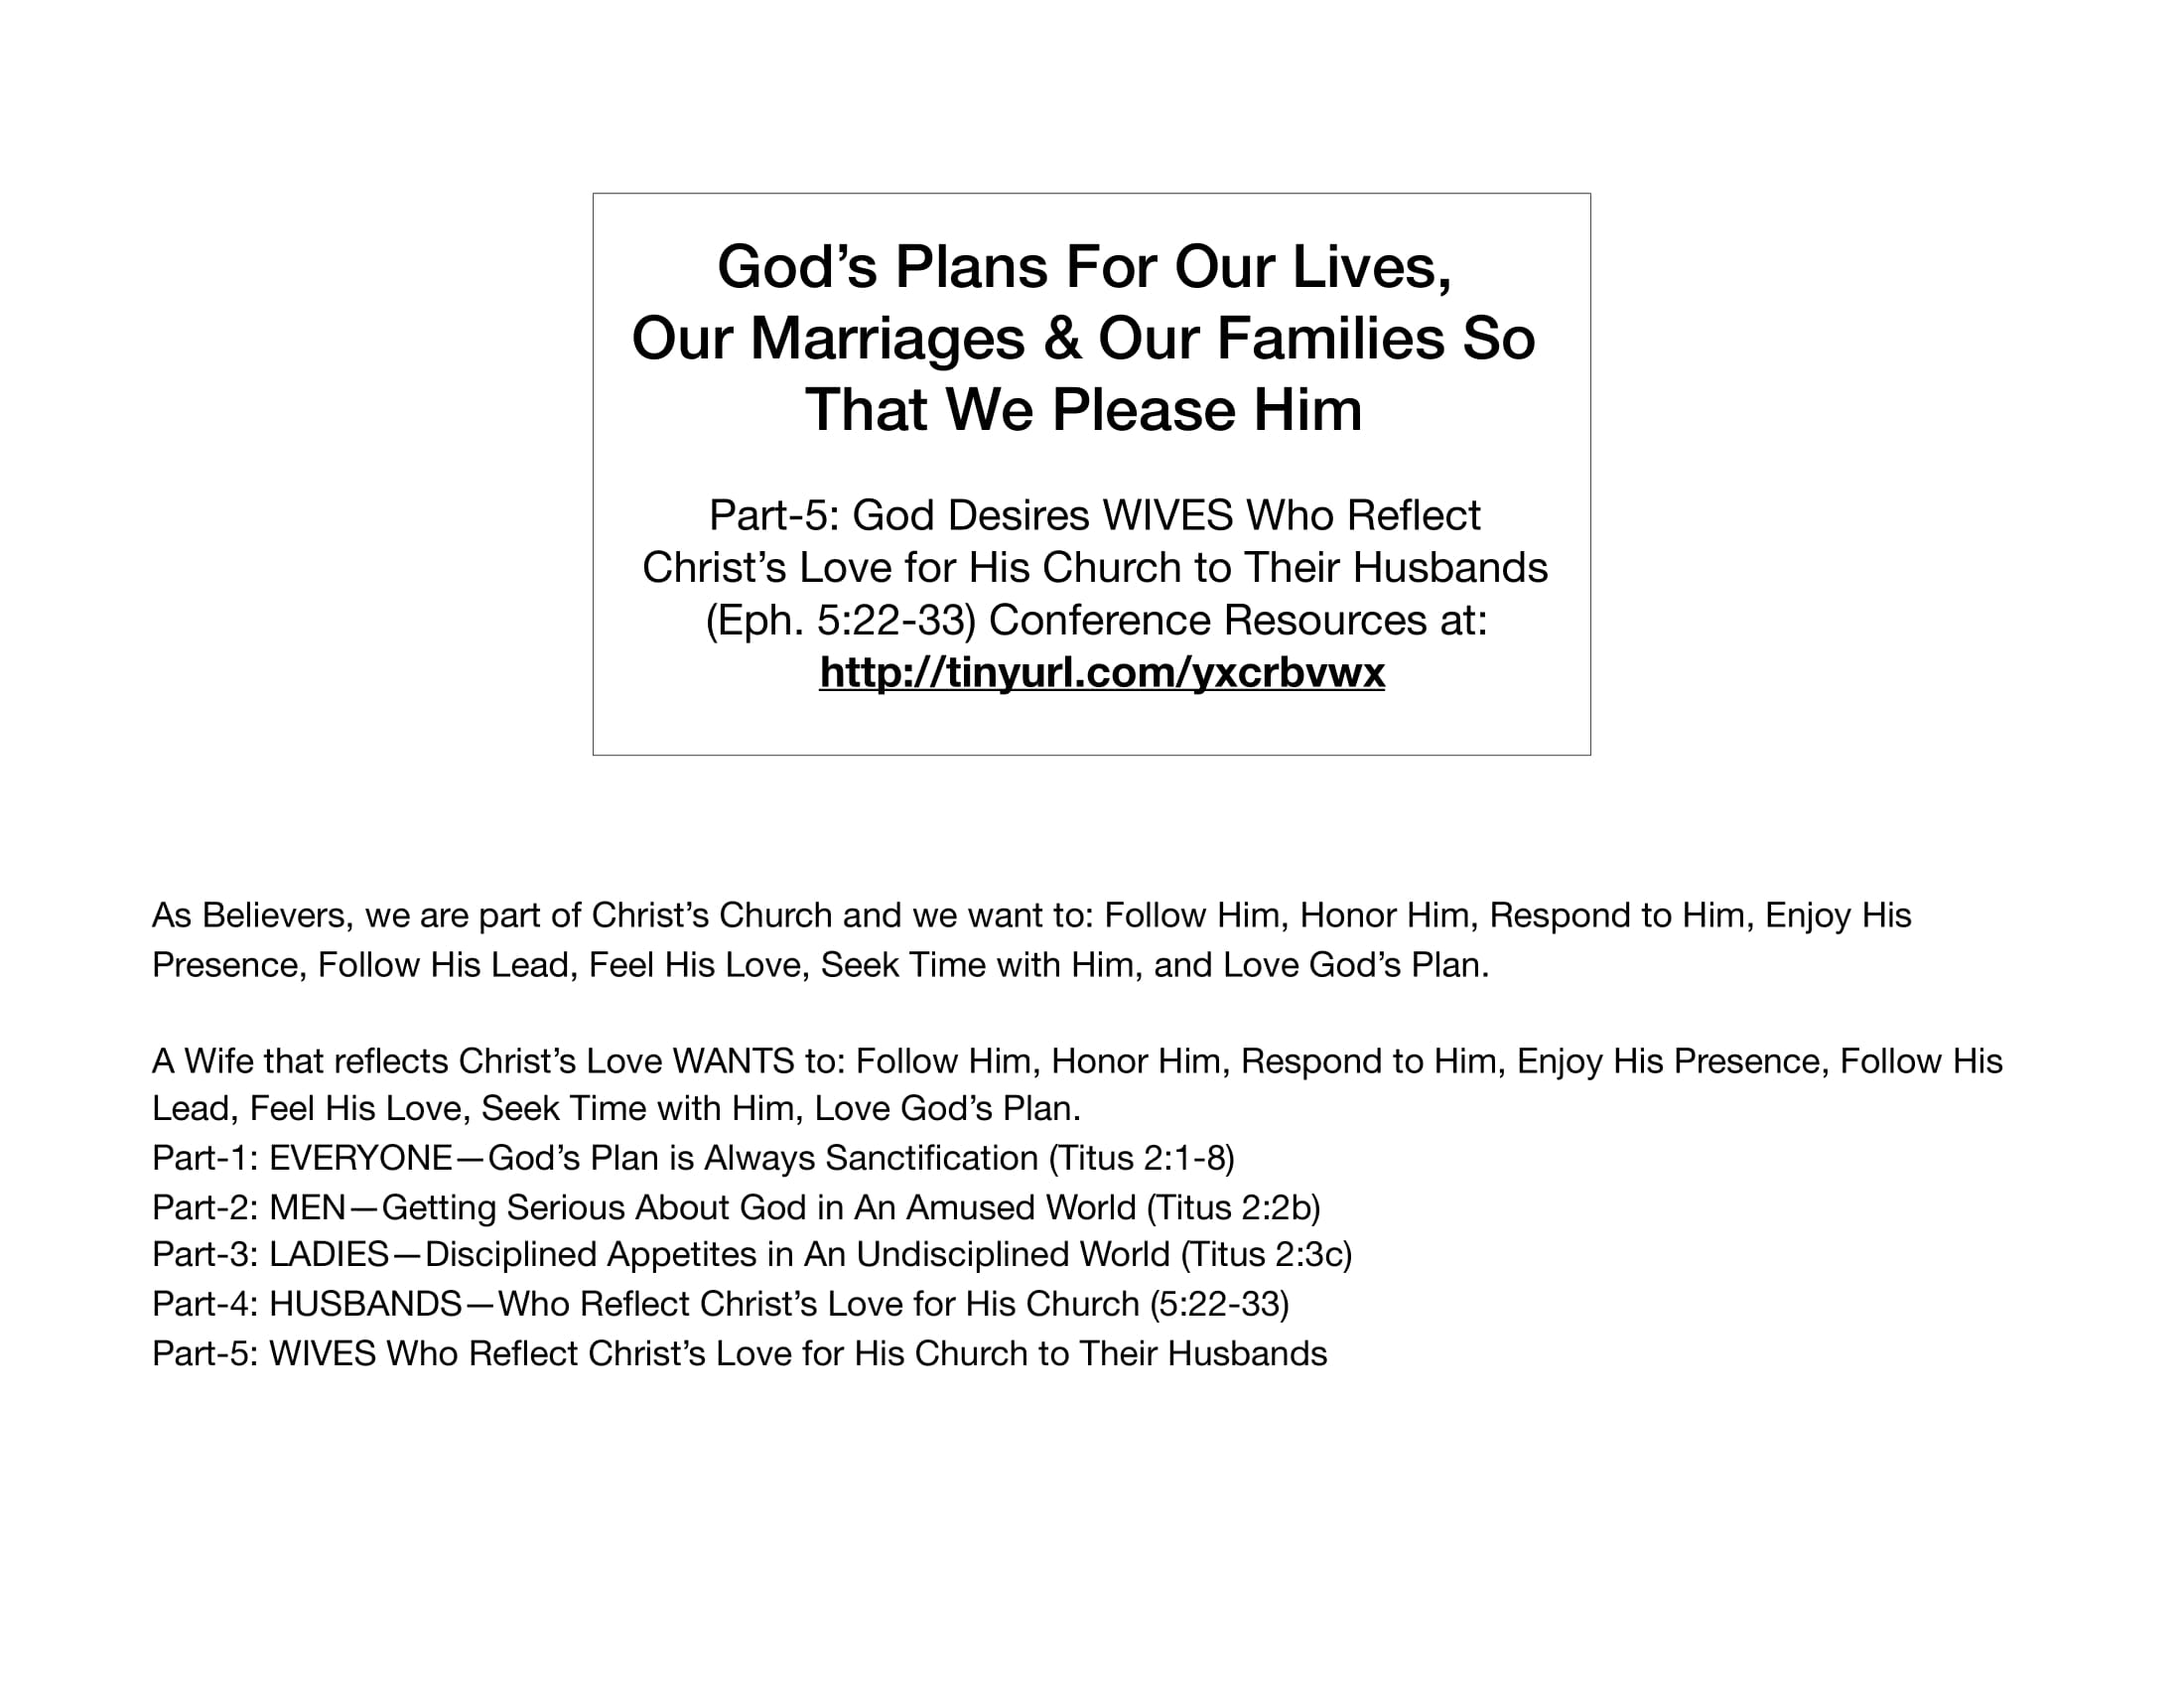 LGI-05 - God Desires Wives Who Reflect Christ's Love To Their Husbands-01